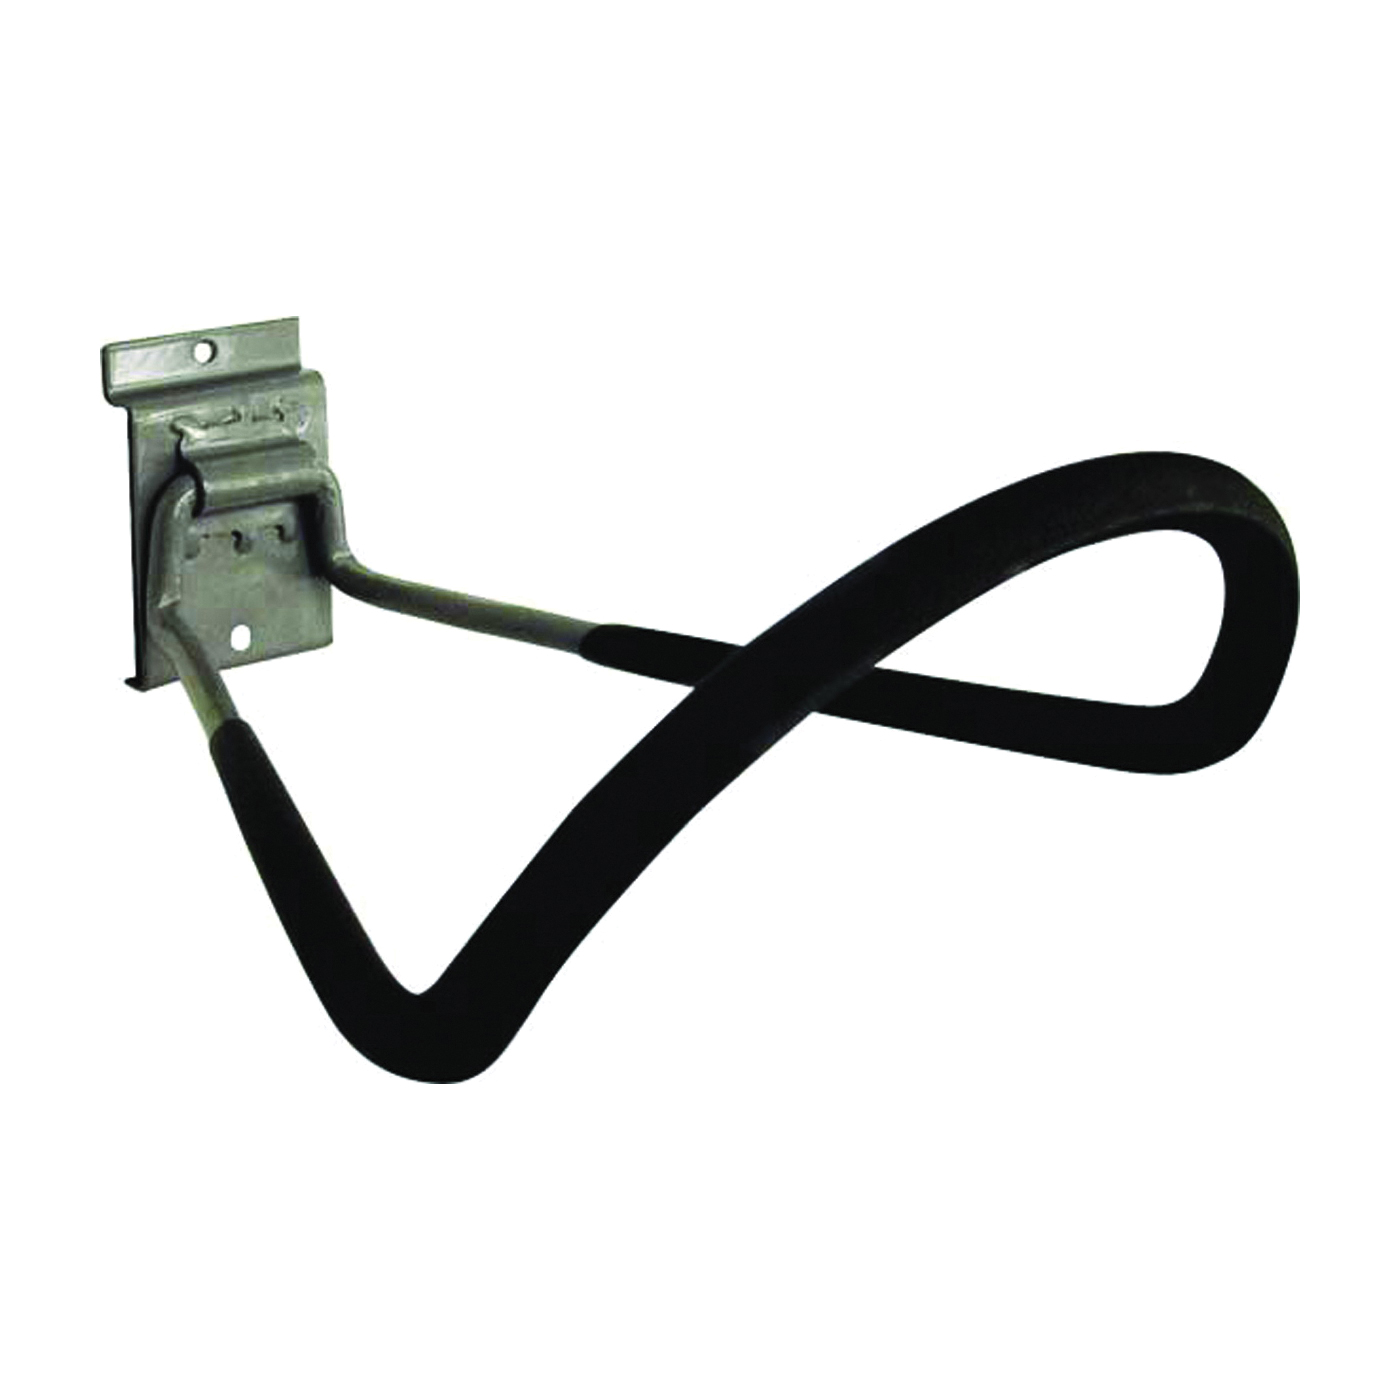 Picture of CRAWFORD STL10 Hanger Hook, 50 lb, Steel, Powder-Coated